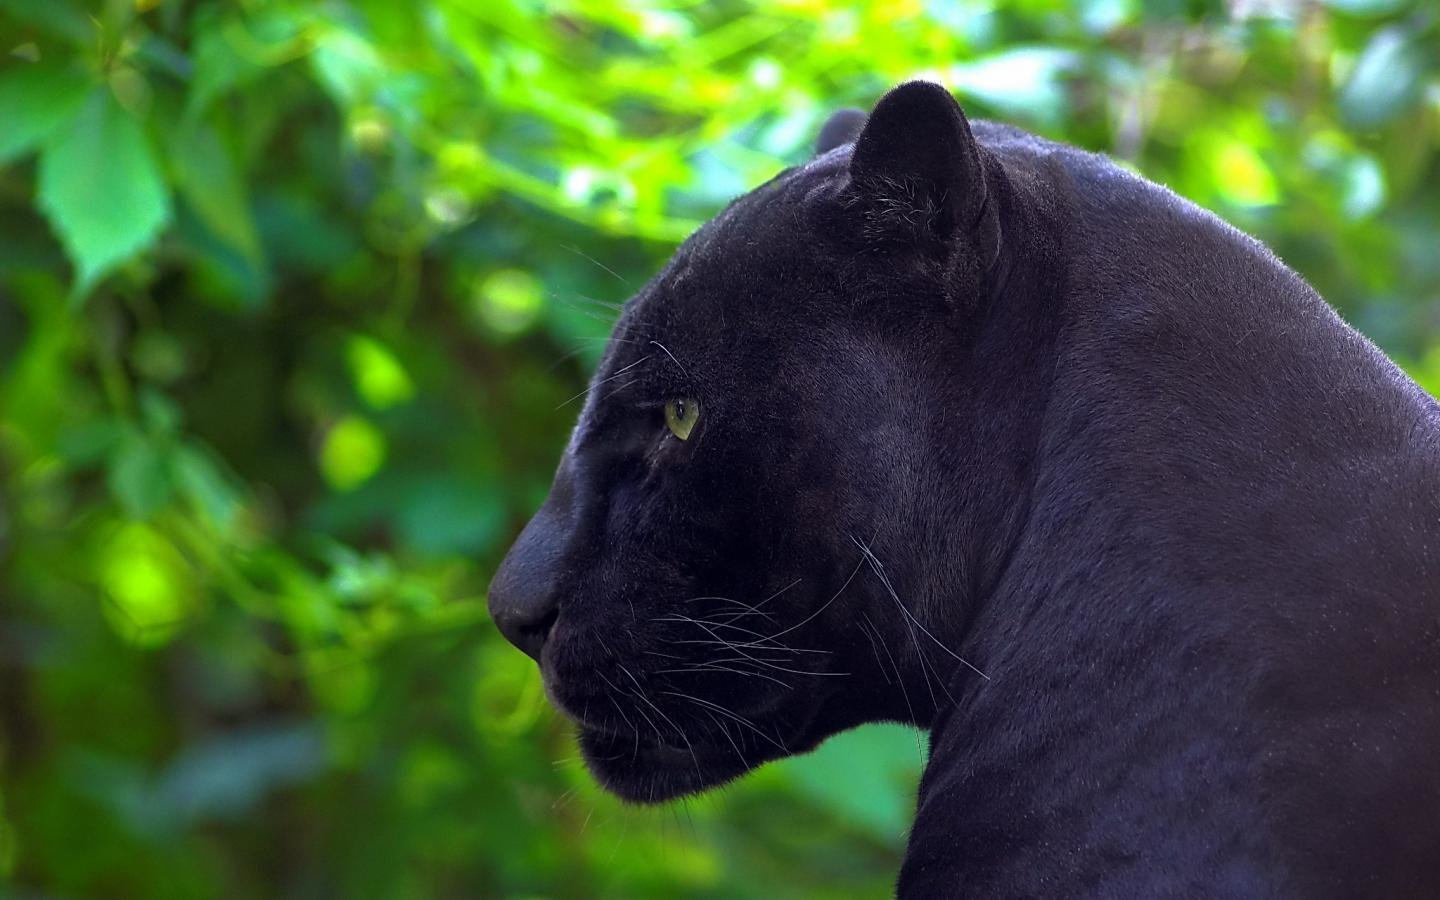 High resolution Panther hd 1440x900 background ID:357147 for computer